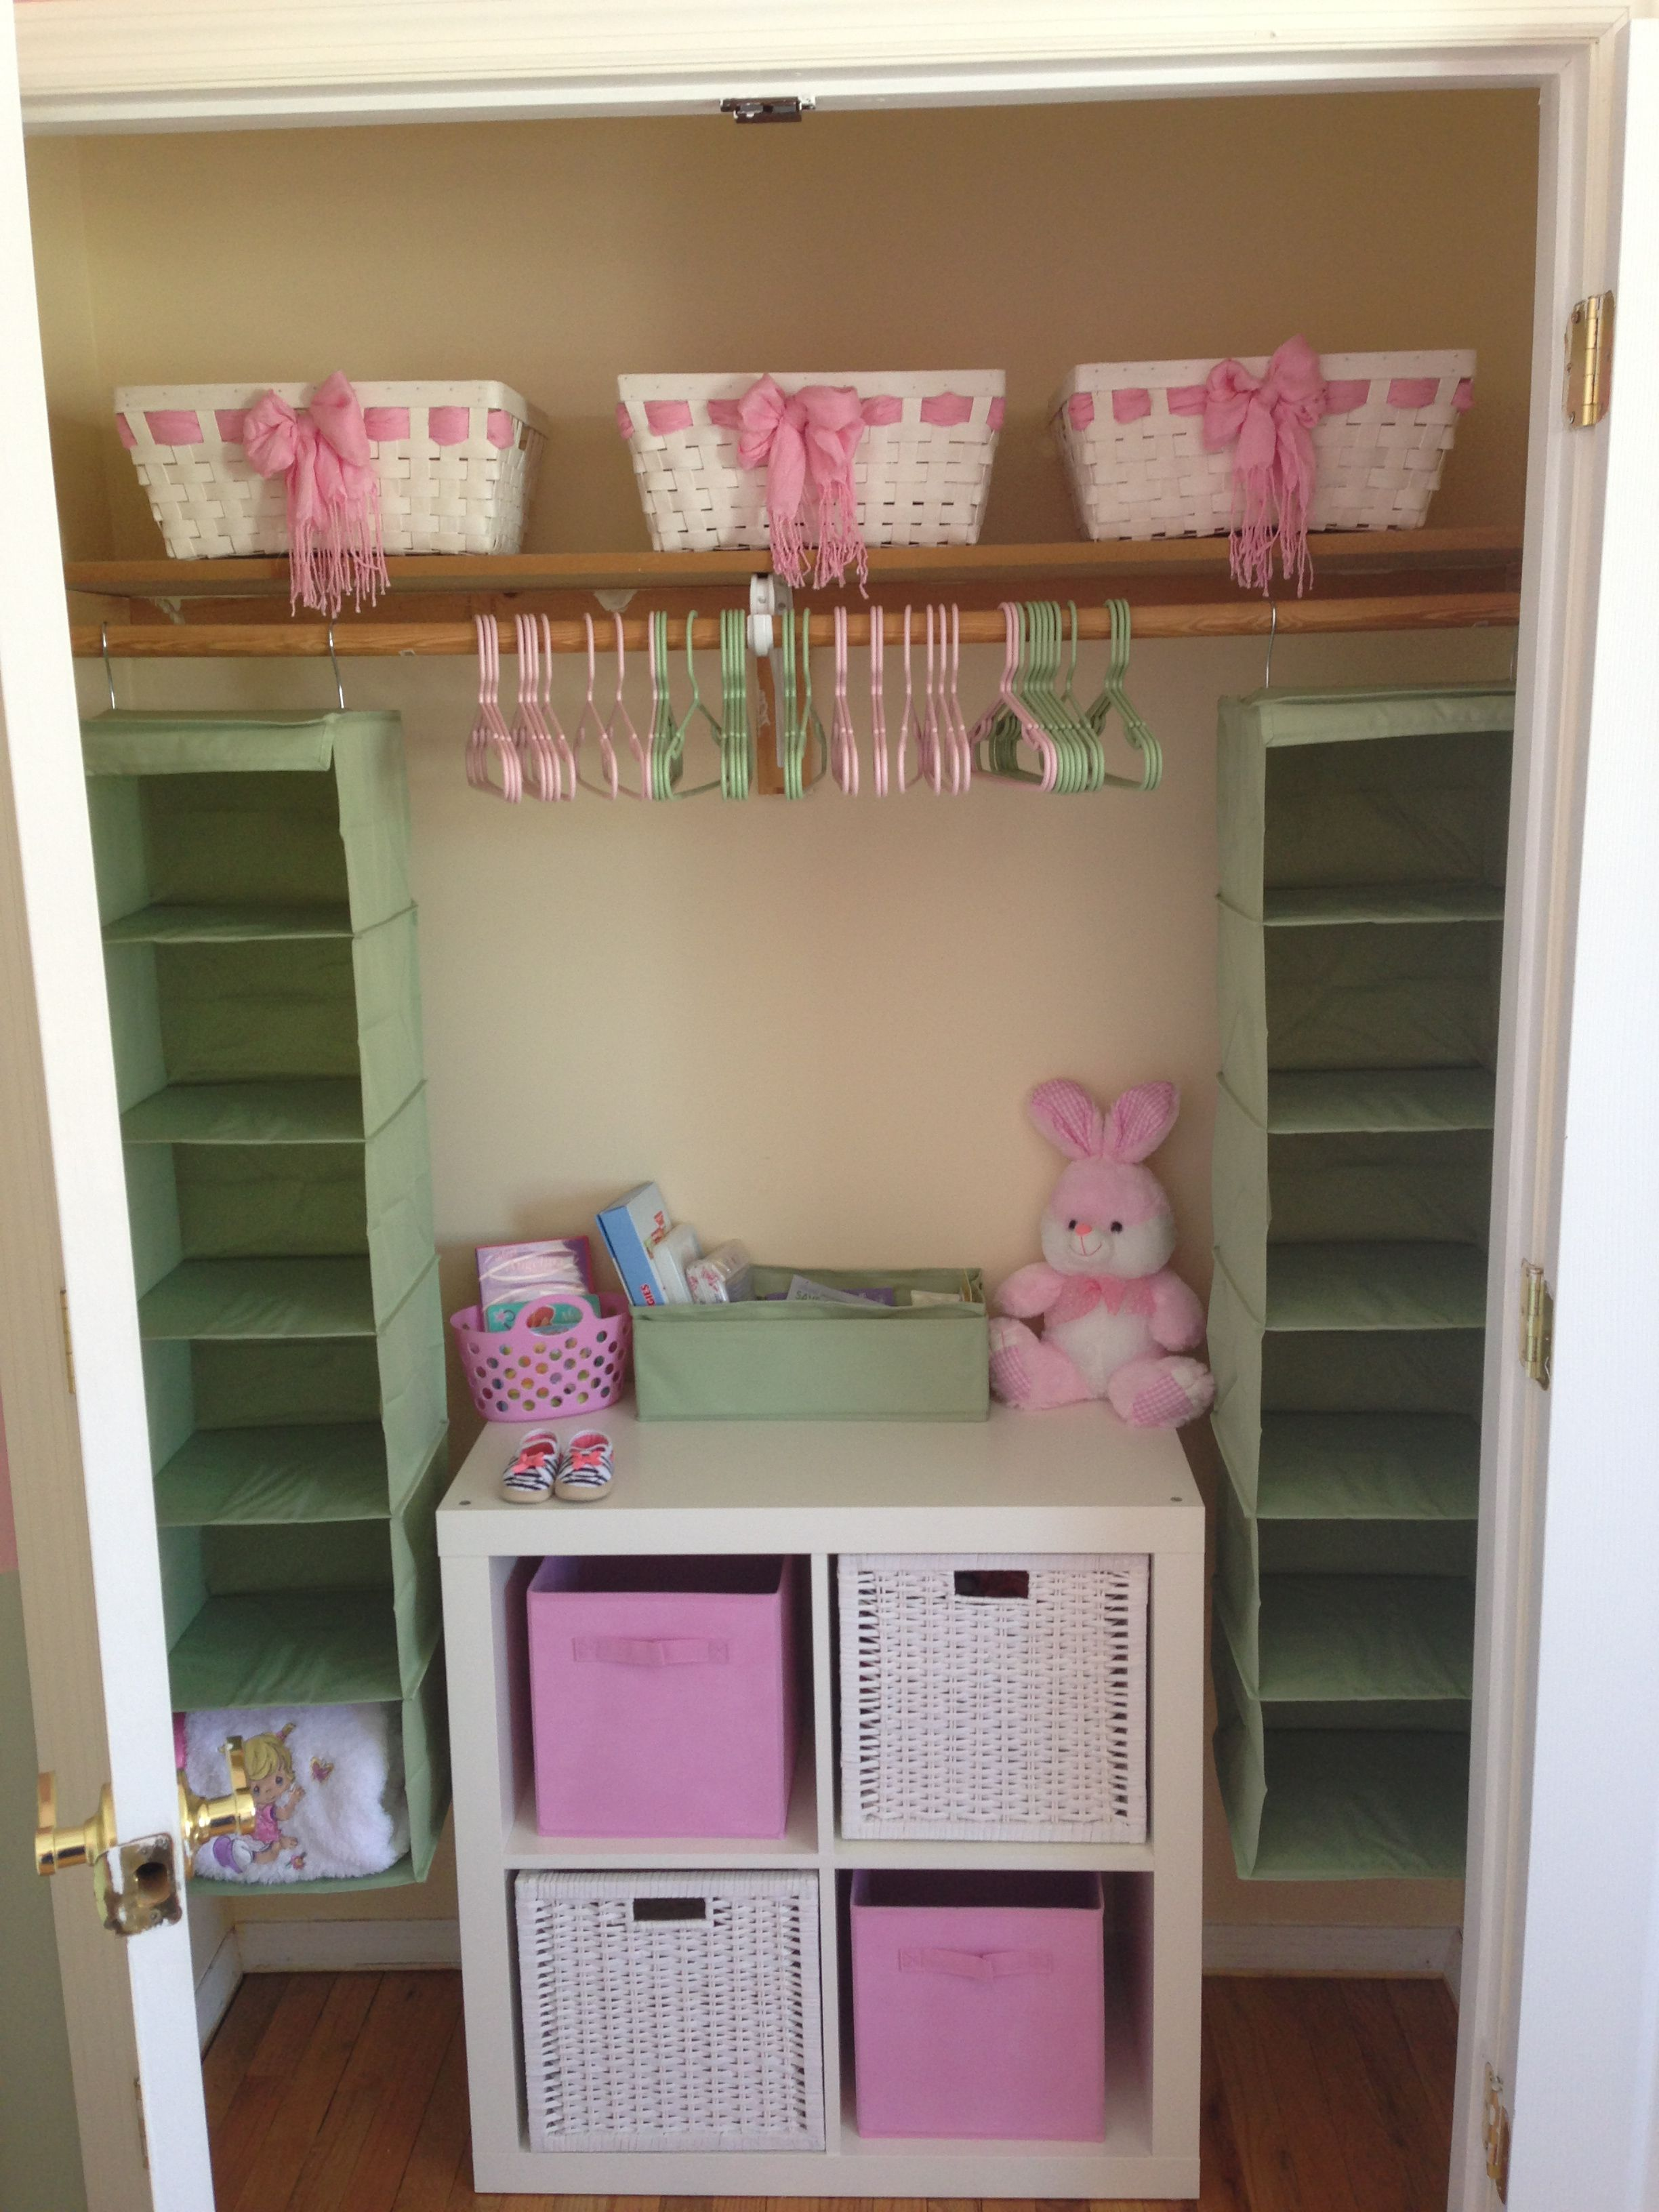 dresser amazon hello from basically you to img an i closet nursery closets and militello hanging rod tour double allows baby adjustable that your bought